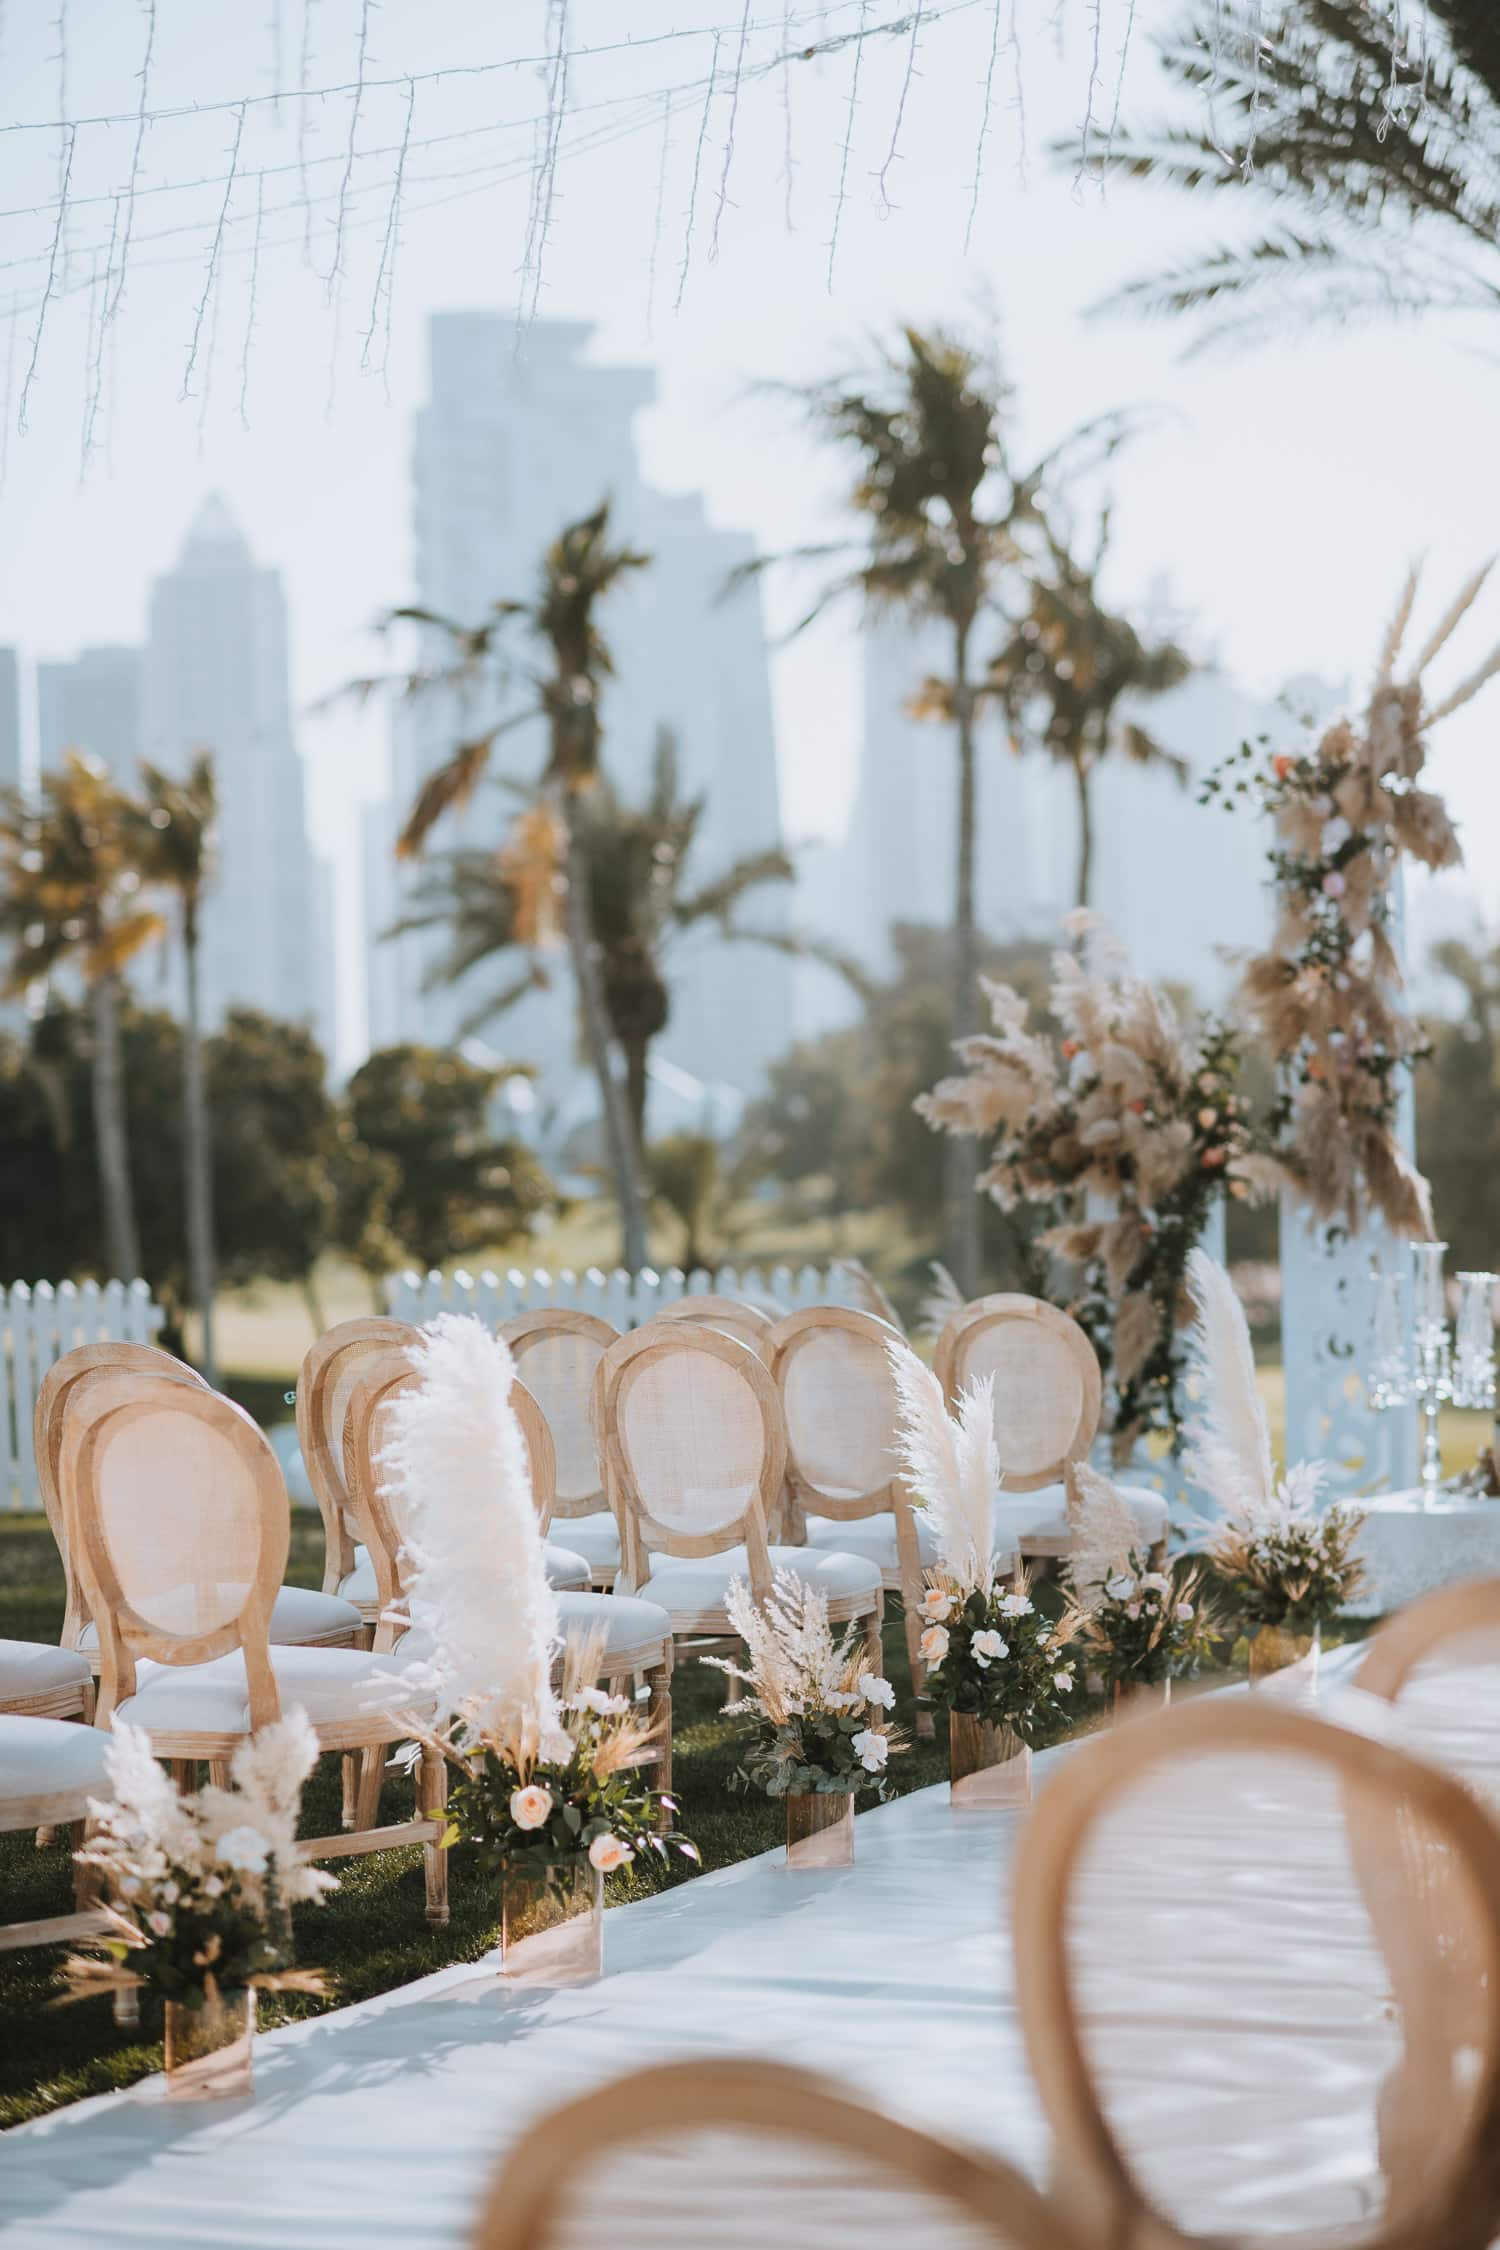 Whimsical Outdoor Wedding Ceremony Decor Ideas